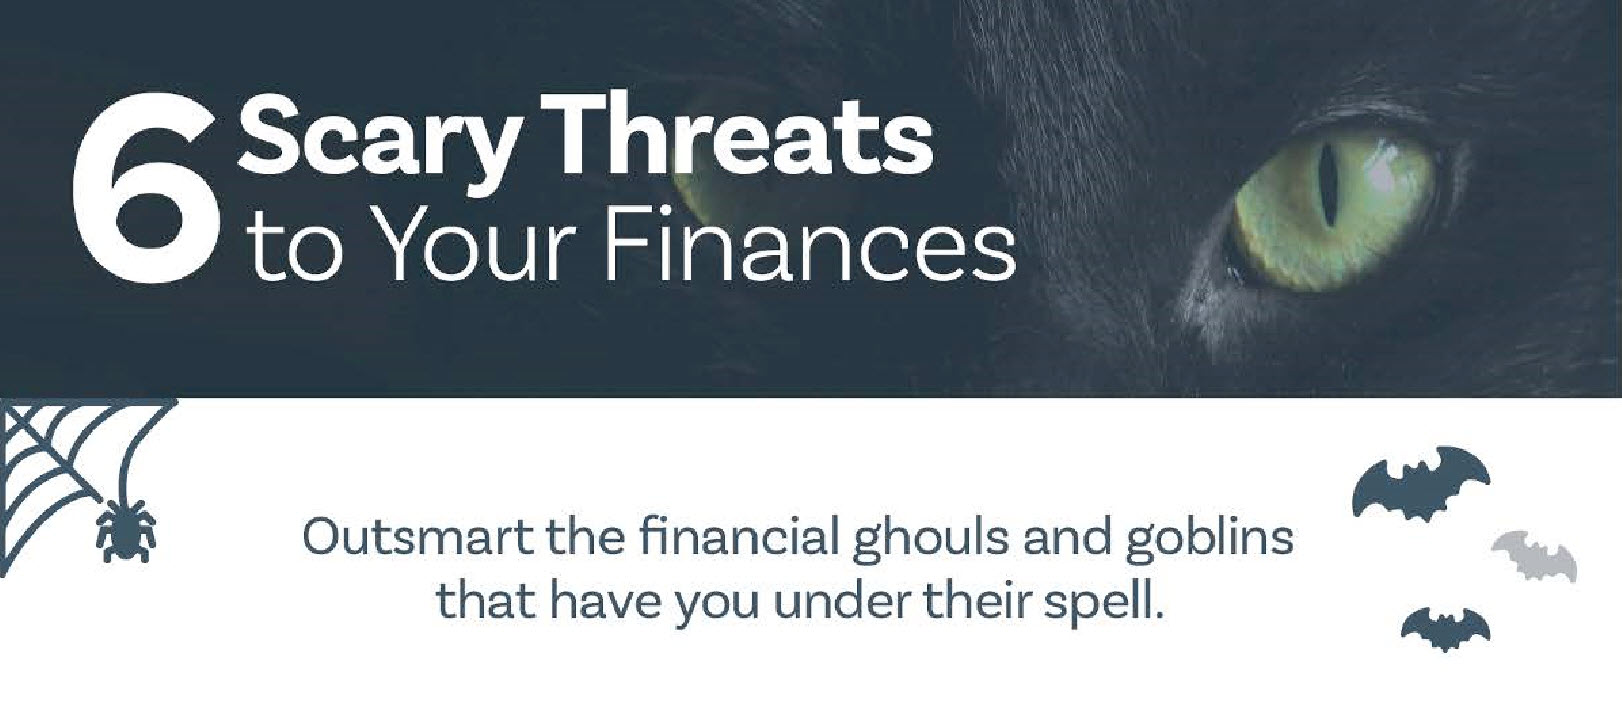 6 Scary Threats to Your Finances